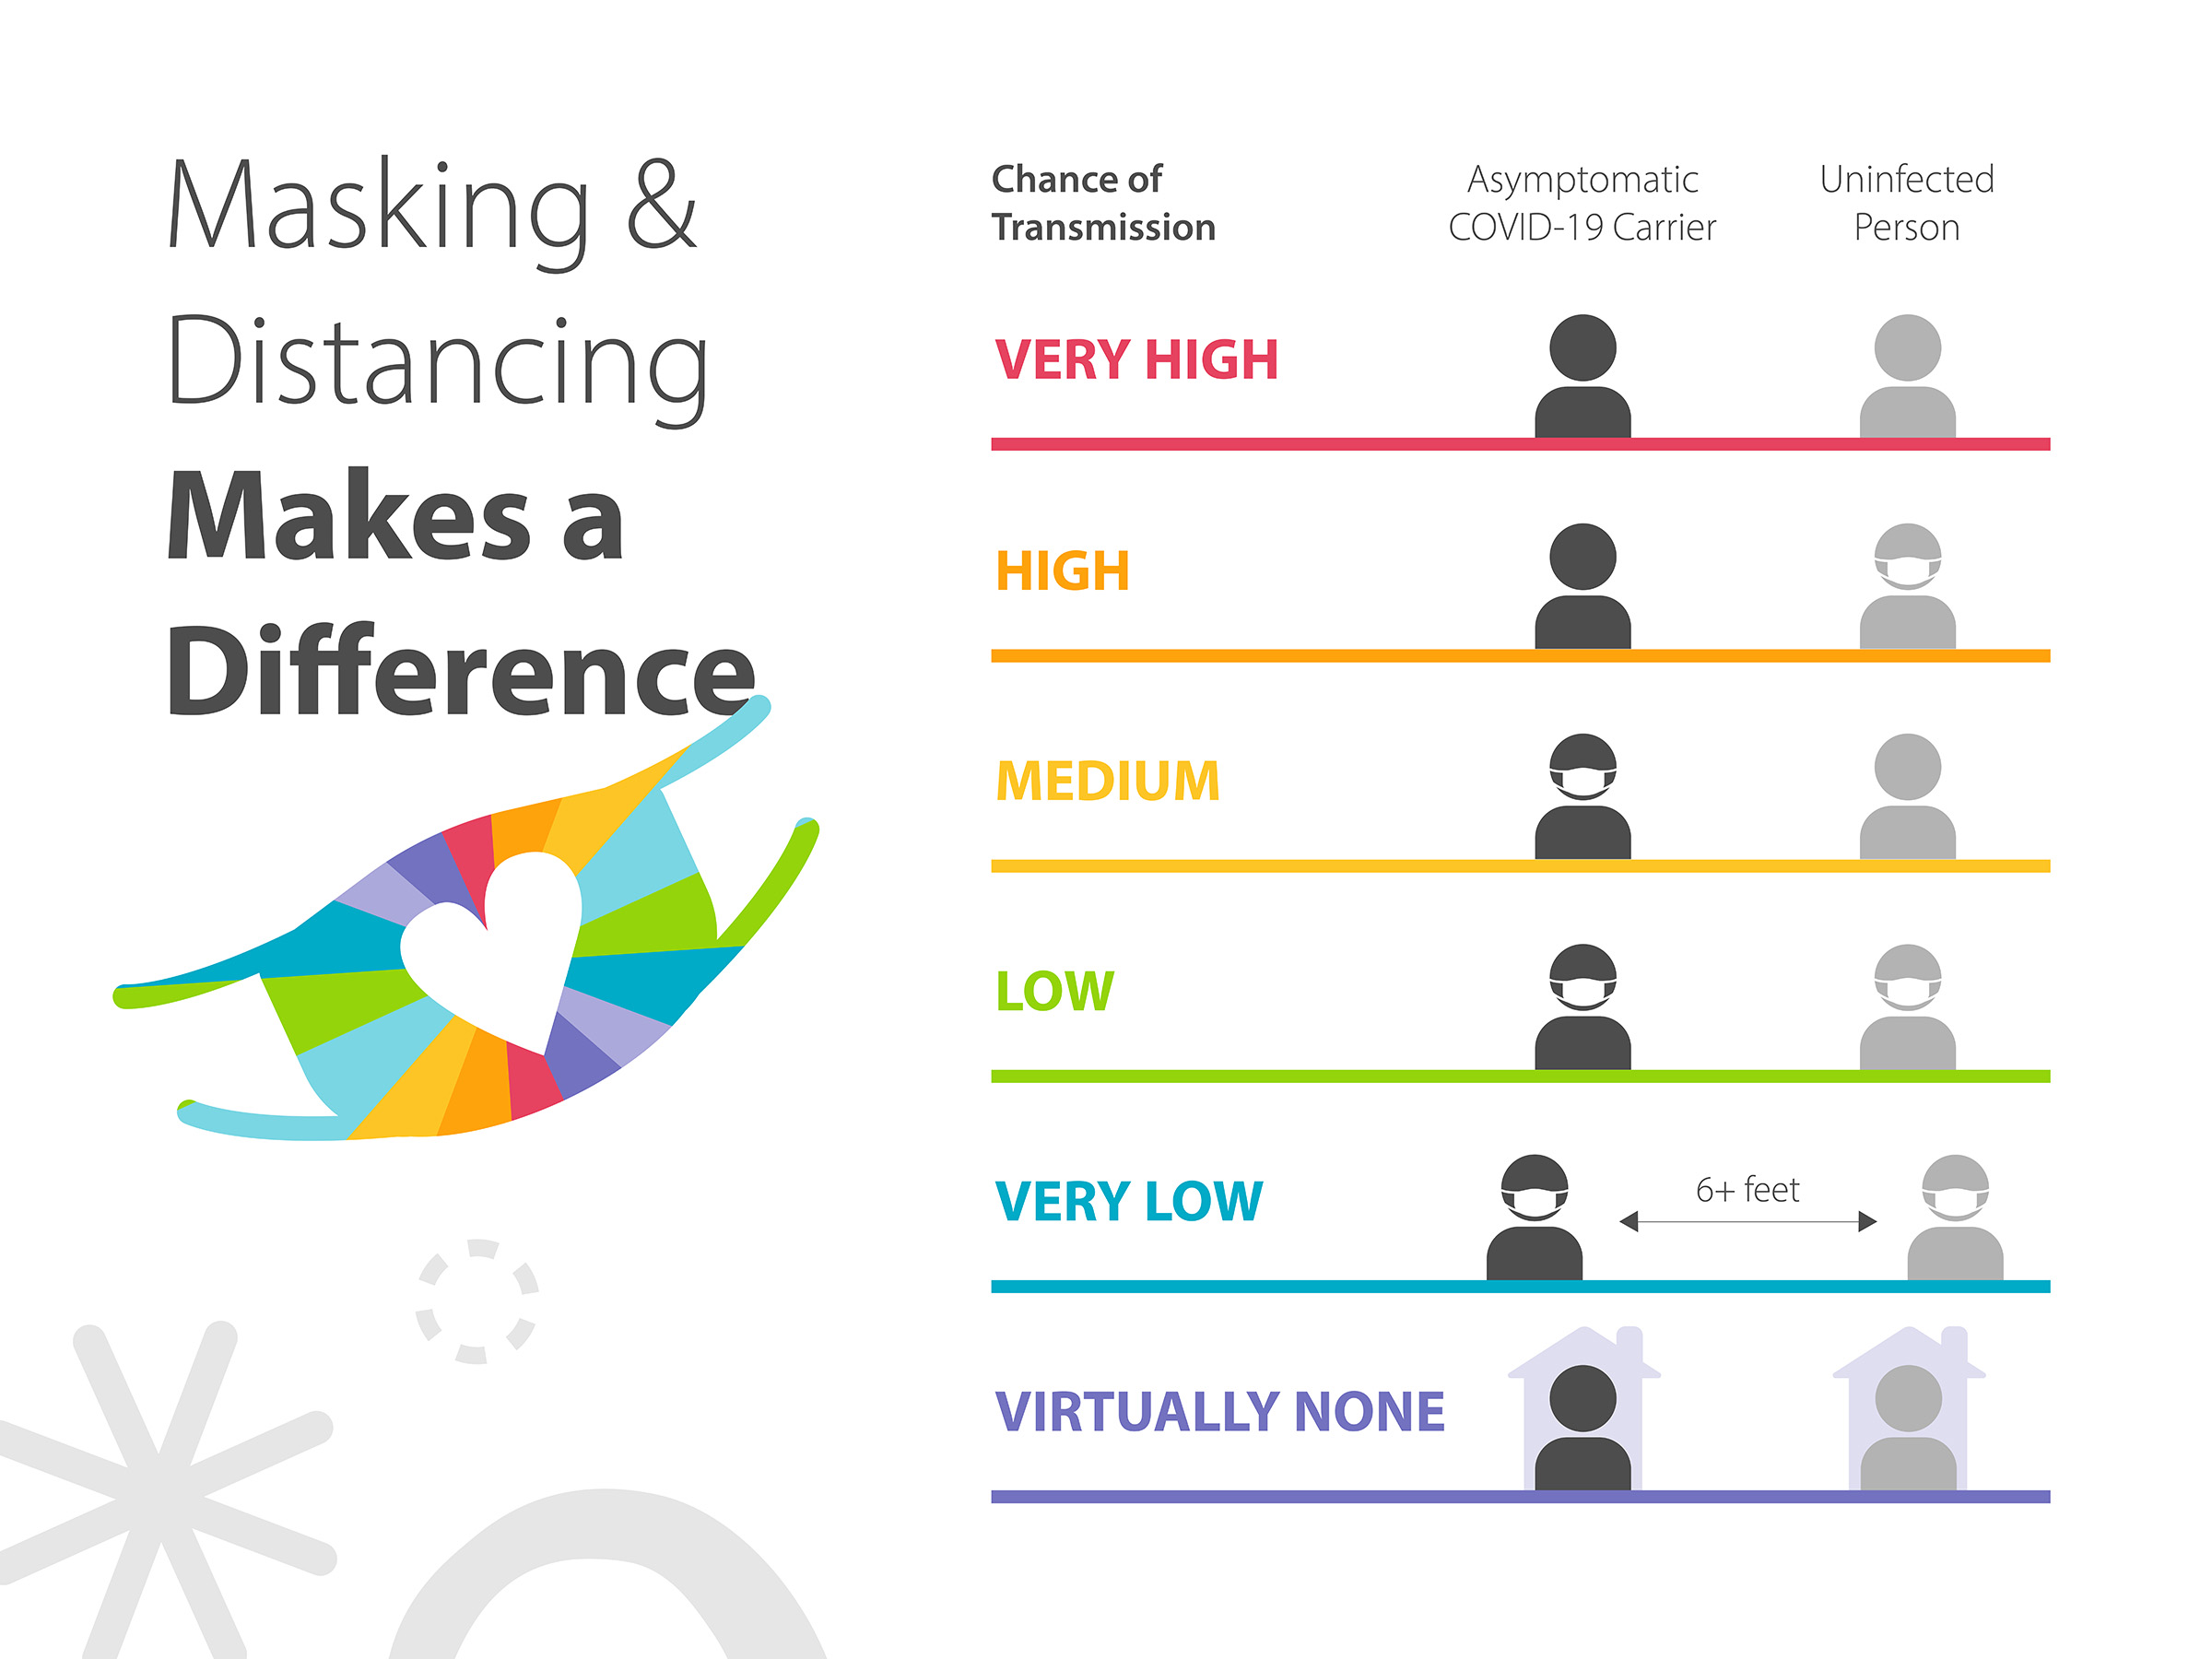 Masking & Distancing Makes a Difference